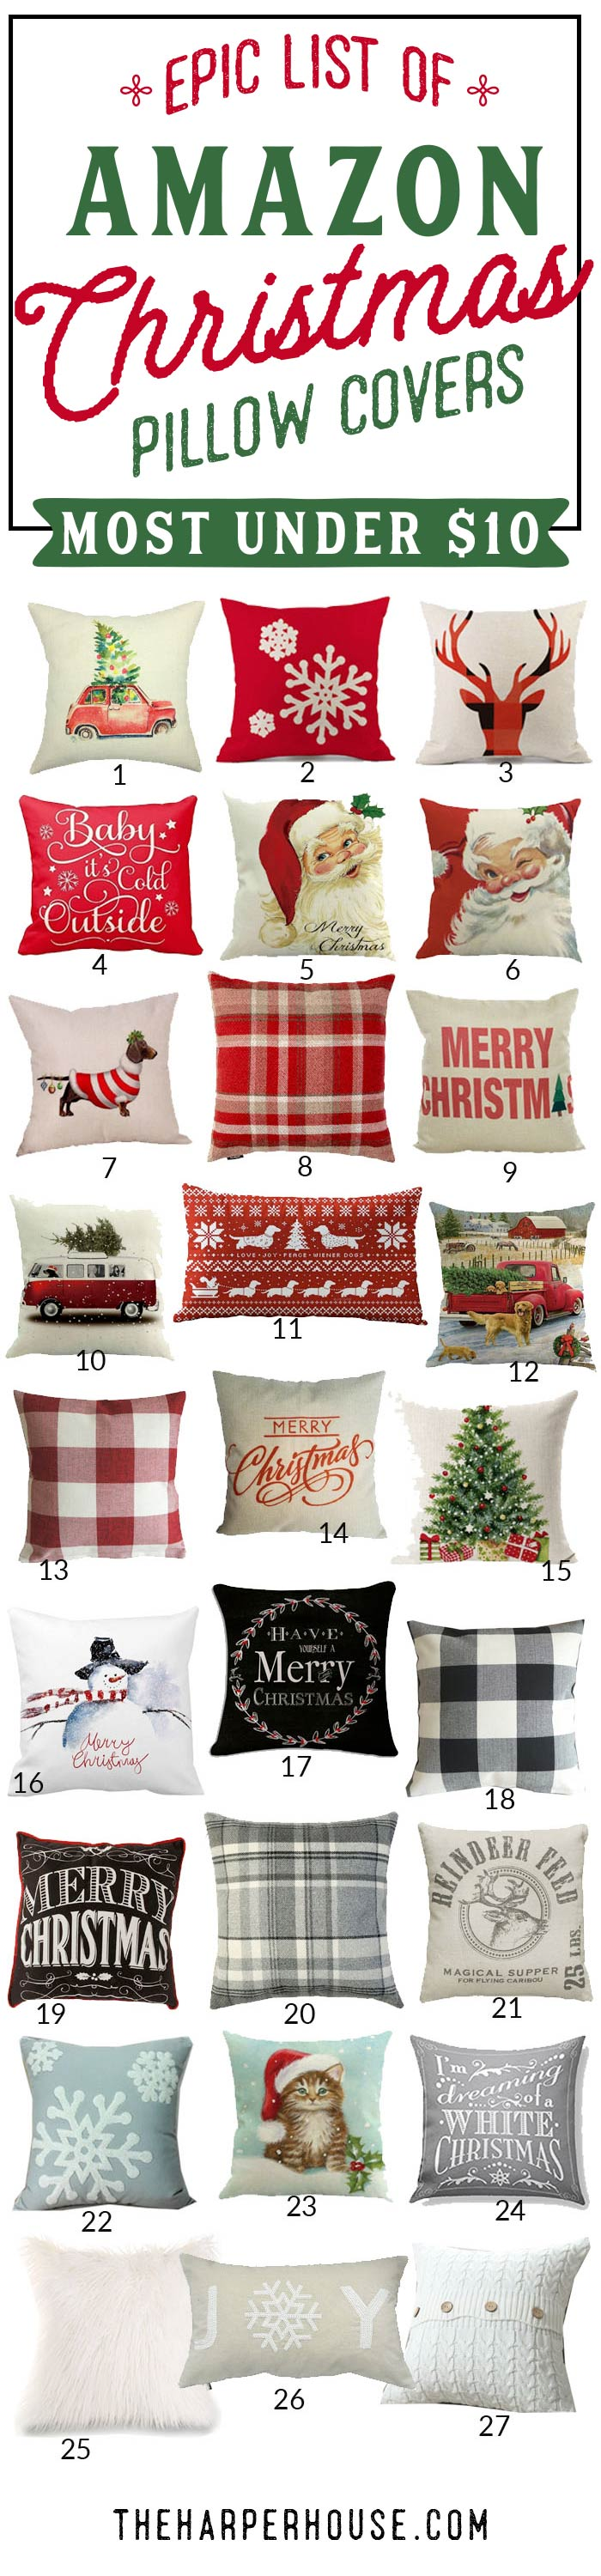 Epic roundup of Christmas pillow covers on Amazon. Most under $10!